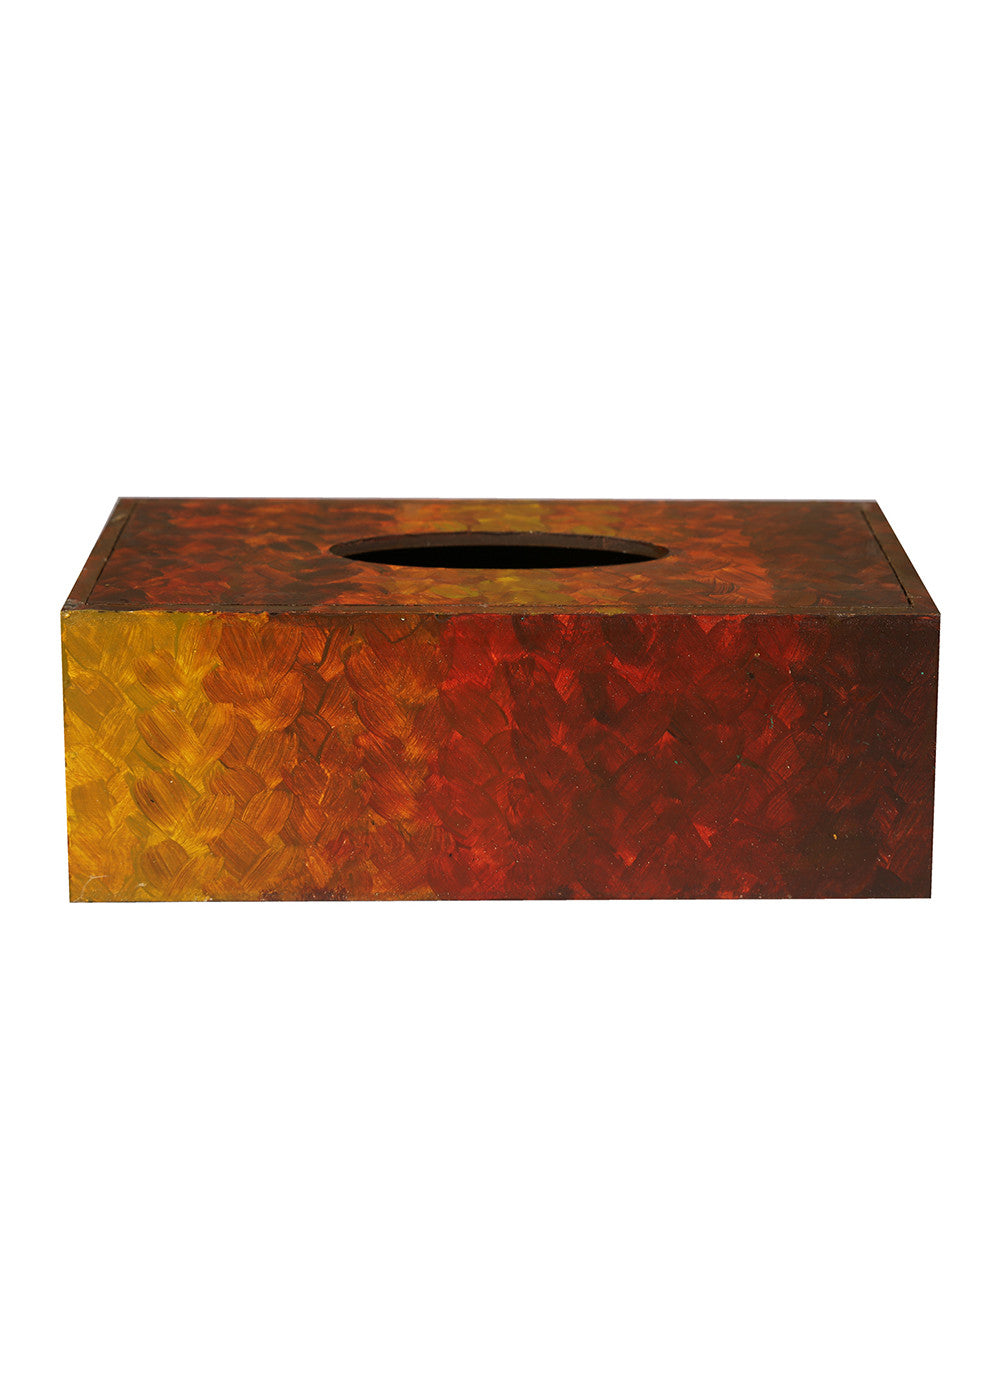 Hand-painted Sunkissed Earth Tissue Box Holder - RANGRAGE